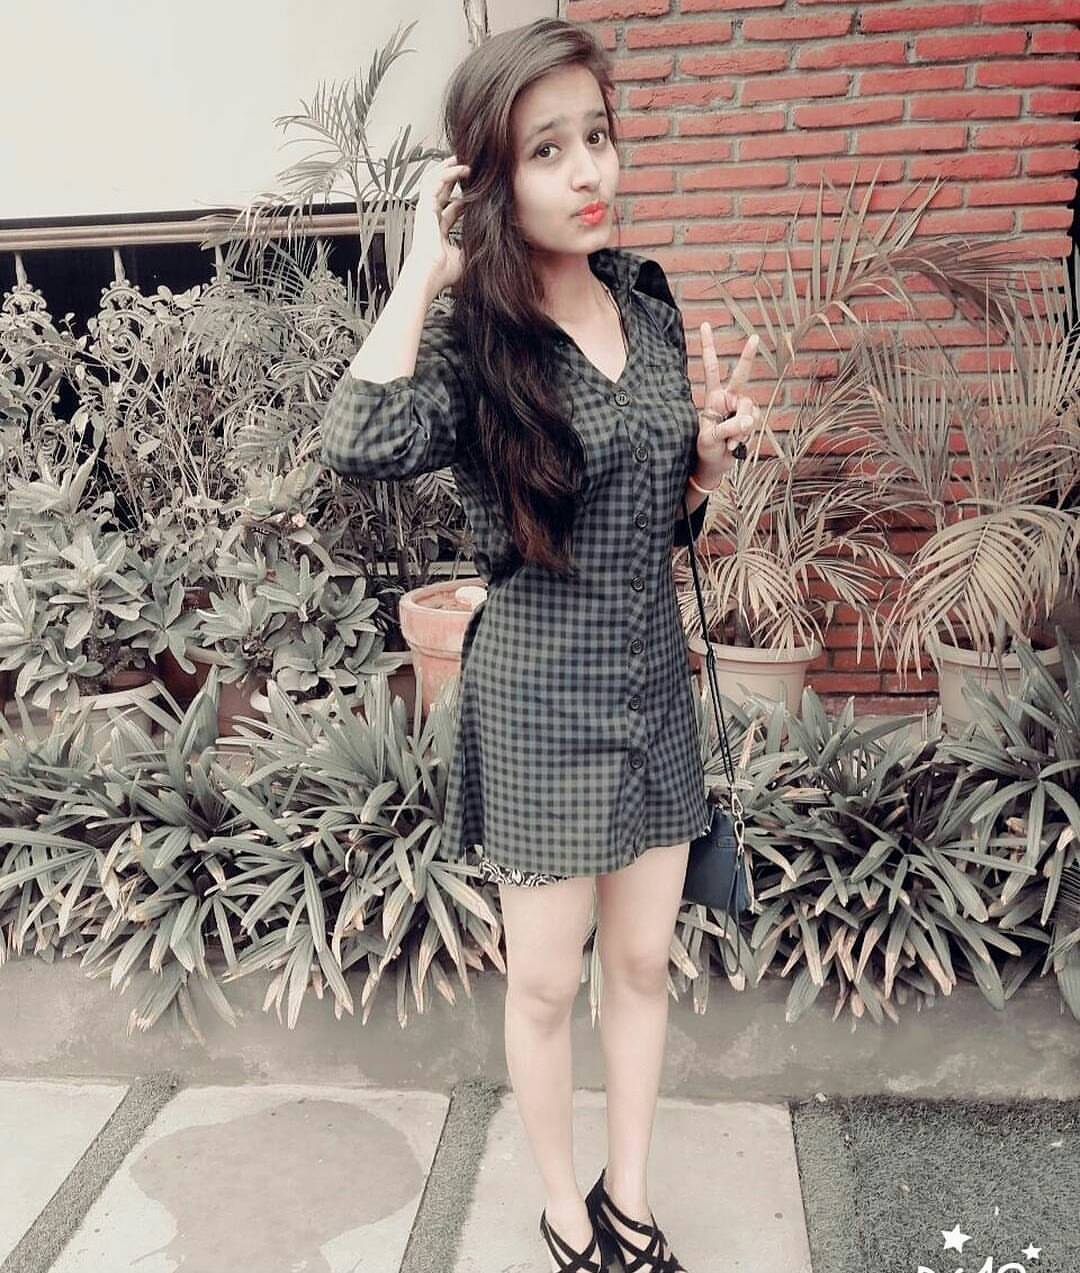 india girl in number girls